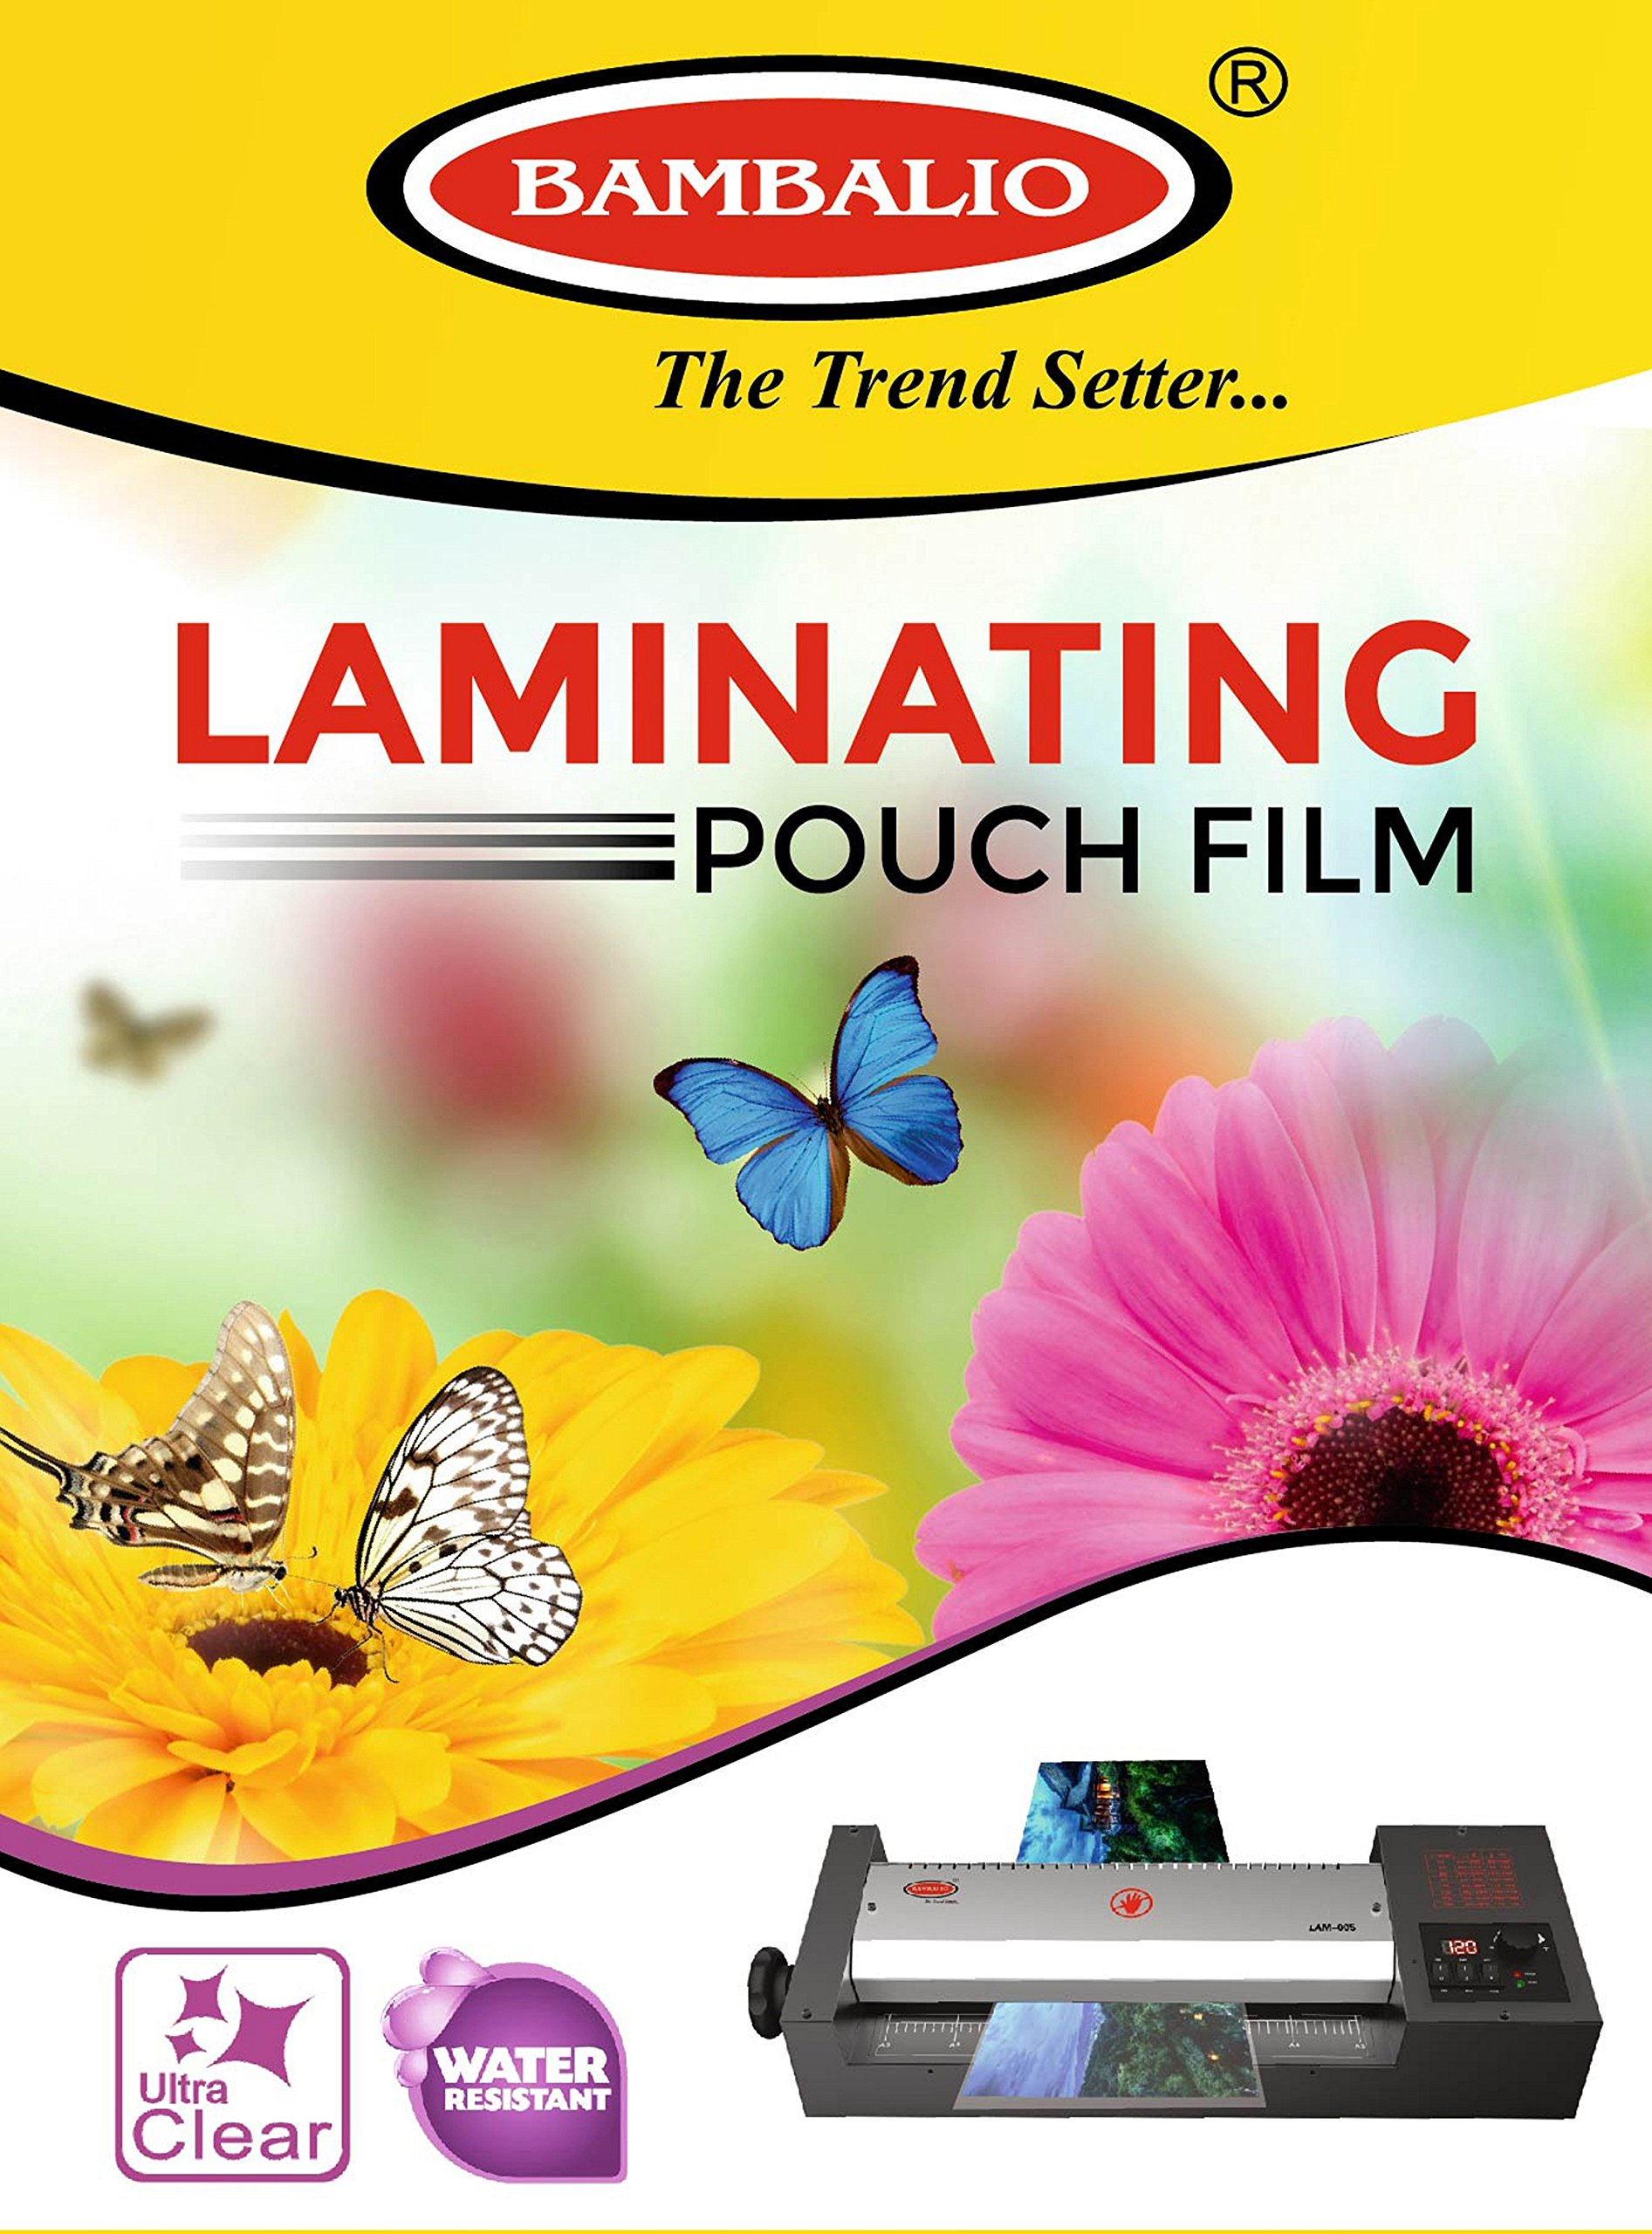 Bambalio Professional Thermal Laminating Pouch 65 X 95 mm Id Card Size - 250 Microns /200 Sheets LAM-625 (B074J5CYYZ) Amazon Price History, Amazon Price Tracker